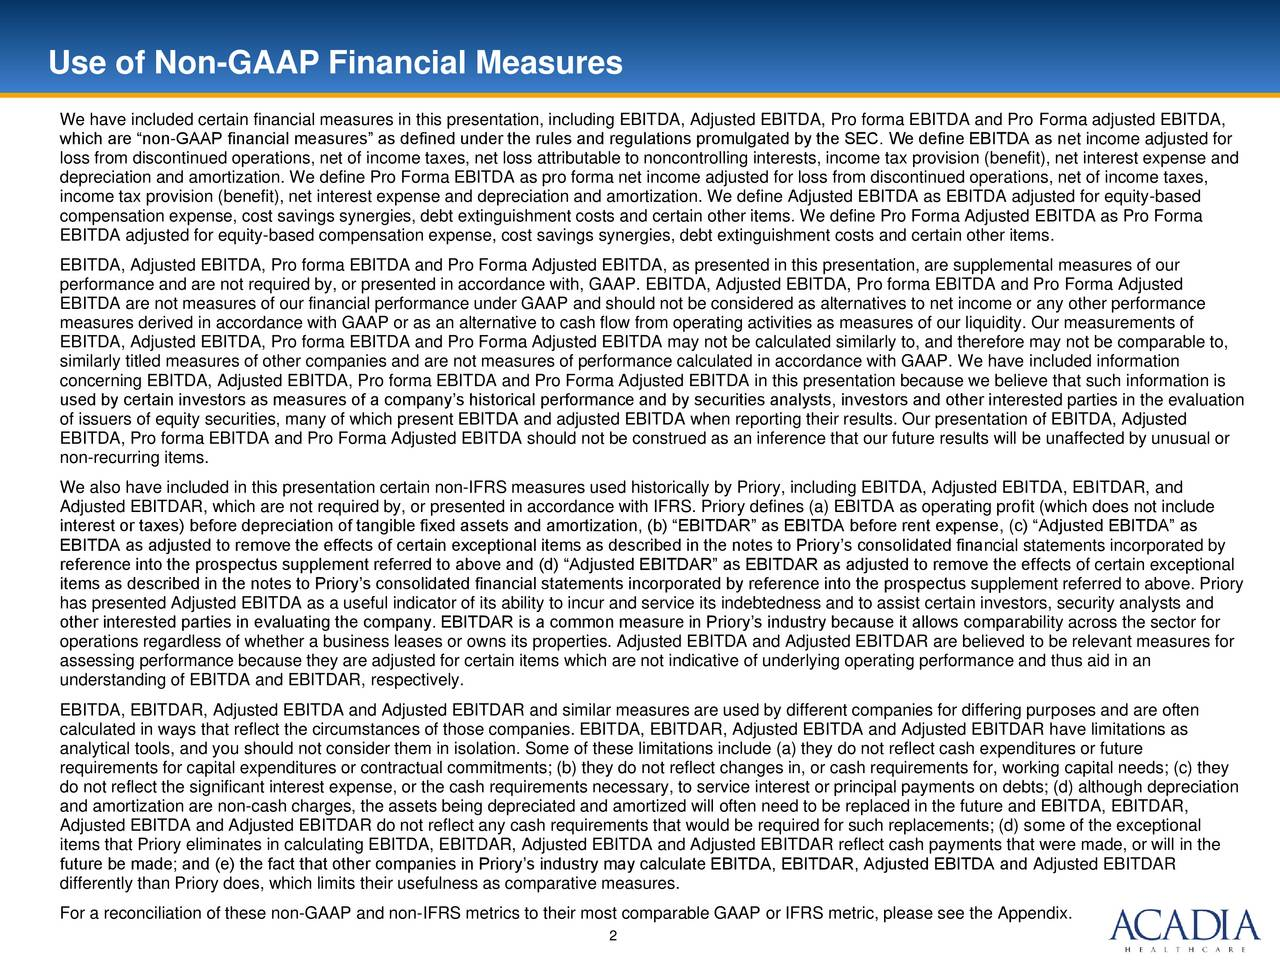 We have included certain financial measures in this presentation, including EBITDA, Adjusted EBITDA, Pro forma EBITDA and Pro Forma adjusted EBITDA, which are non-GAAP financial measures as defined under the rules and regulations promulgated by the SEC. We define EBITDA as net income adjusted for loss from discontinued operations, net of income taxes, net loss attributable to noncontrolling interests, income tax provision (benefit), net interest expense and depreciation and amortization. We define Pro Forma EBITDA as pro forma net income adjusted for loss from discontinued operations, net of income taxes, income tax provision (benefit), net interest expense and depreciation and amortization. We define Adjusted EBITDA as EBITDA adjusted for equity-based compensation expense, cost savings synergies, debt extinguishment costs and certain other items. We define Pro Forma Adjusted EBITDA as Pro Forma EBITDA adjusted for equity-based compensation expense, cost savings synergies, debt extinguishment costs and certain other items. EBITDA, Adjusted EBITDA, Pro forma EBITDA and Pro Forma Adjusted EBITDA, as presented in this presentation, are supplemental measures of our performance and are not required by, or presented in accordance with, GAAP. EBITDA, Adjusted EBITDA, Pro forma EBITDA and Pro Forma Adjusted EBITDA are not measures of our financial performance under GAAP and should not be considered as alternatives to net income or any other performance measures derived in accordance with GAAP or as an alternative to cash flow from operating activities as measures of our liquidity. Our measurements of EBITDA, Adjusted EBITDA, Pro forma EBITDA and Pro Forma Adjusted EBITDA may not be calculated similarly to, and therefore may not be comparable to, similarly titled measures of other companies and are not measures of performance calculated in accordance with GAAP. We have included information concerning EBITDA, Adjusted EBITDA, Pro forma EBITDA and Pro Forma Adjusted EBITDA in 